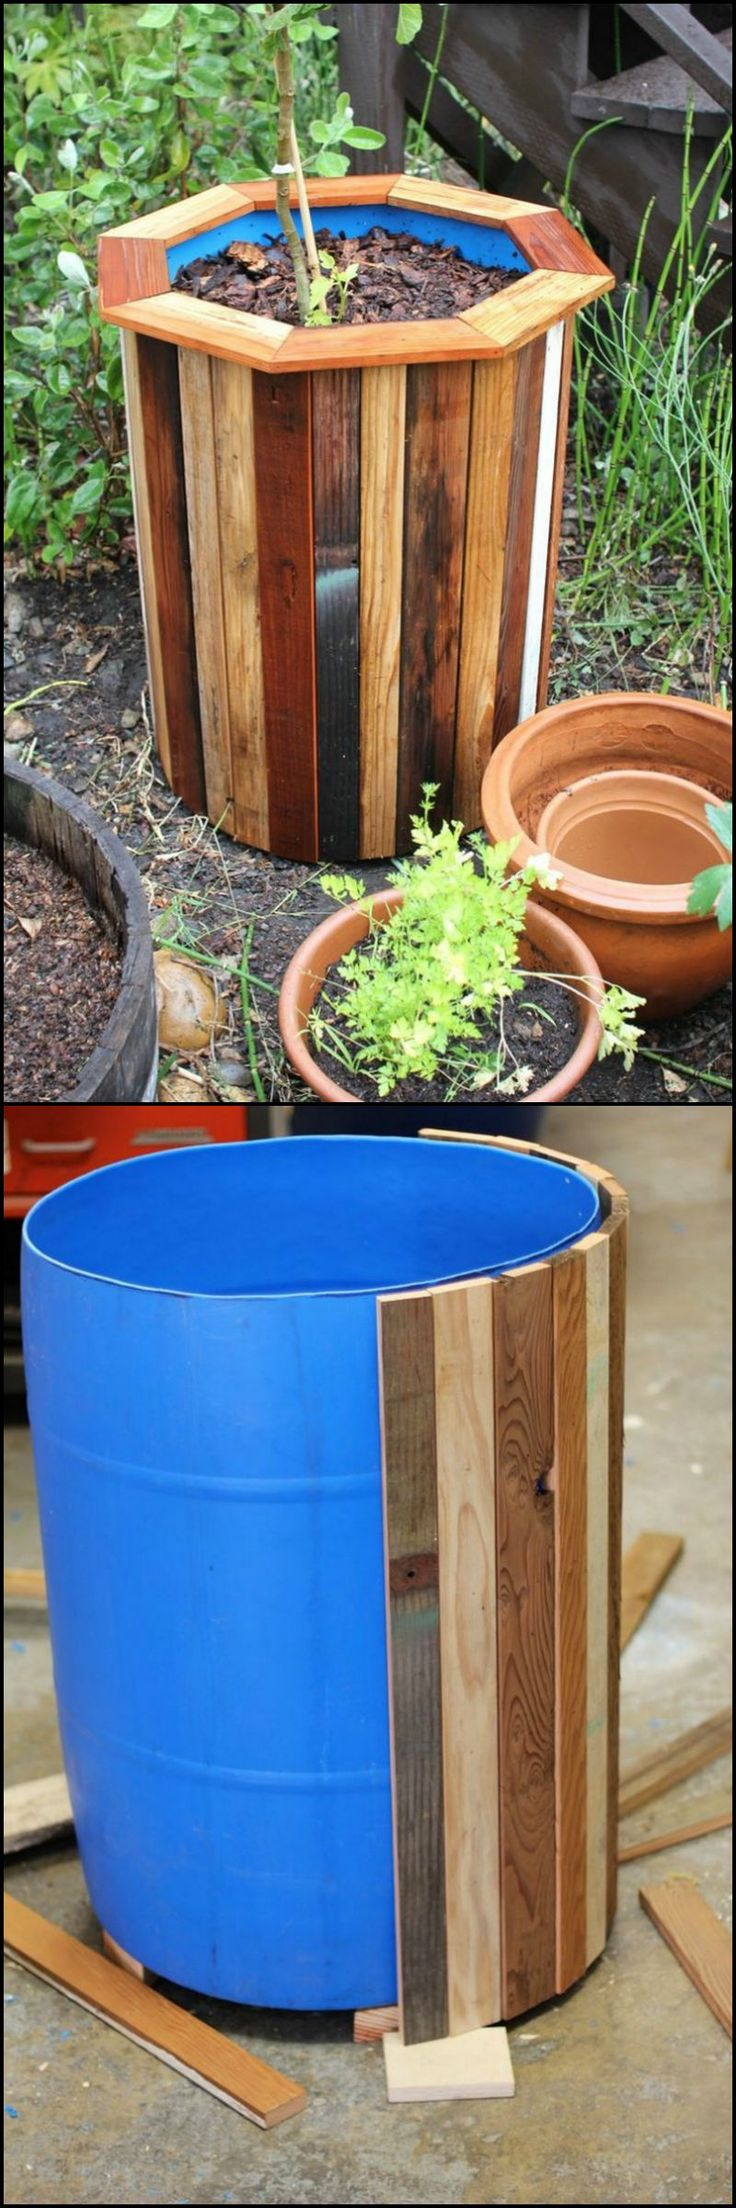 How To Make A Planter From Recycled Plastic Barrel http://theownerbuildernetwork.co/x799 Plastic barrels may be functional, but they aren't particularly attractive. By recycling them into planters, you can keep them out of landfill and make something unique for your outdoor area.